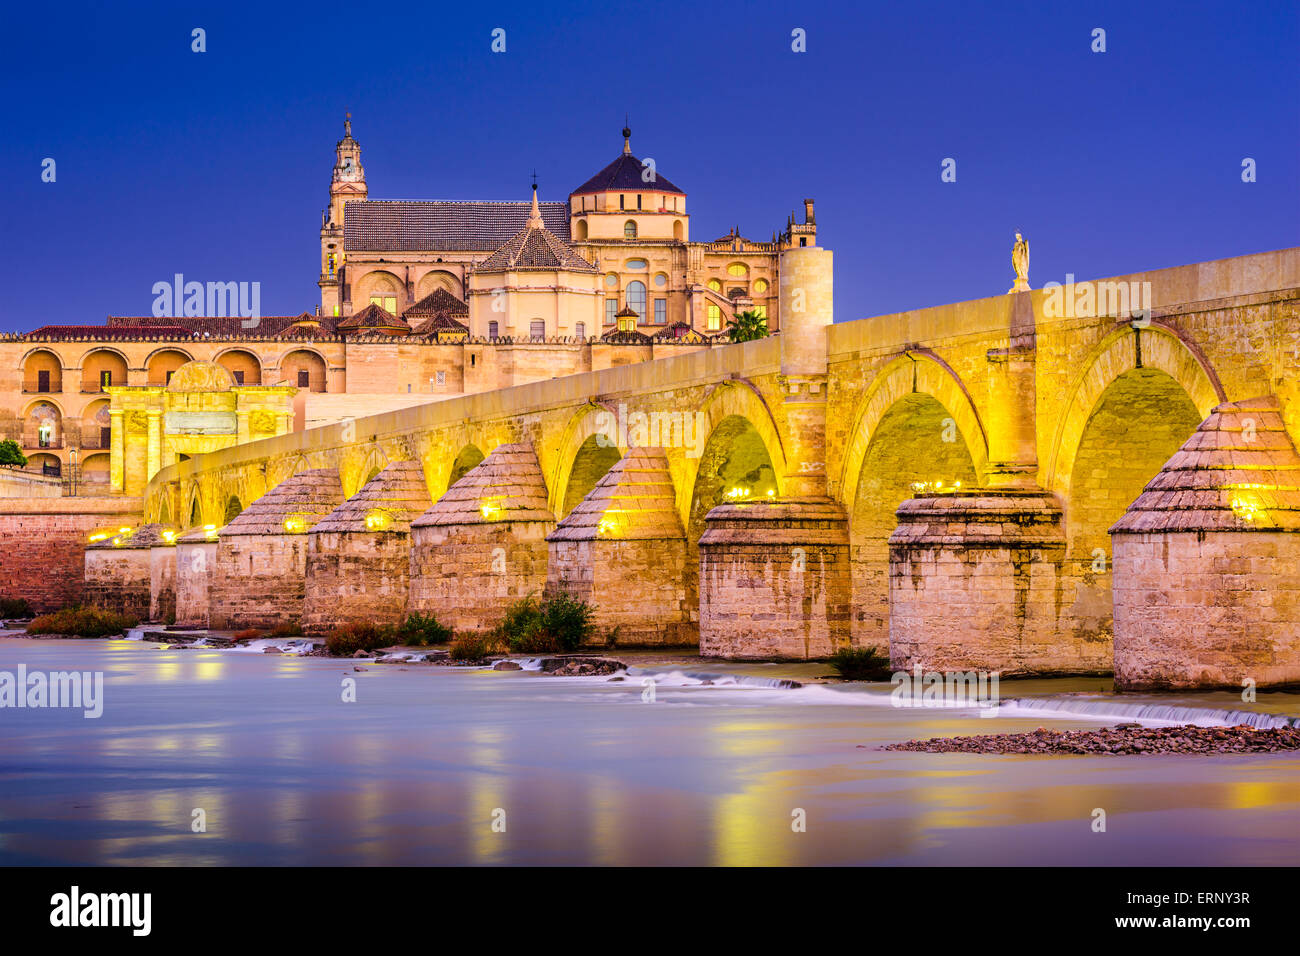 Cordoba, Spain old town skyline at the Mosque-Cathedral and Guadalquivir River. - Stock Image